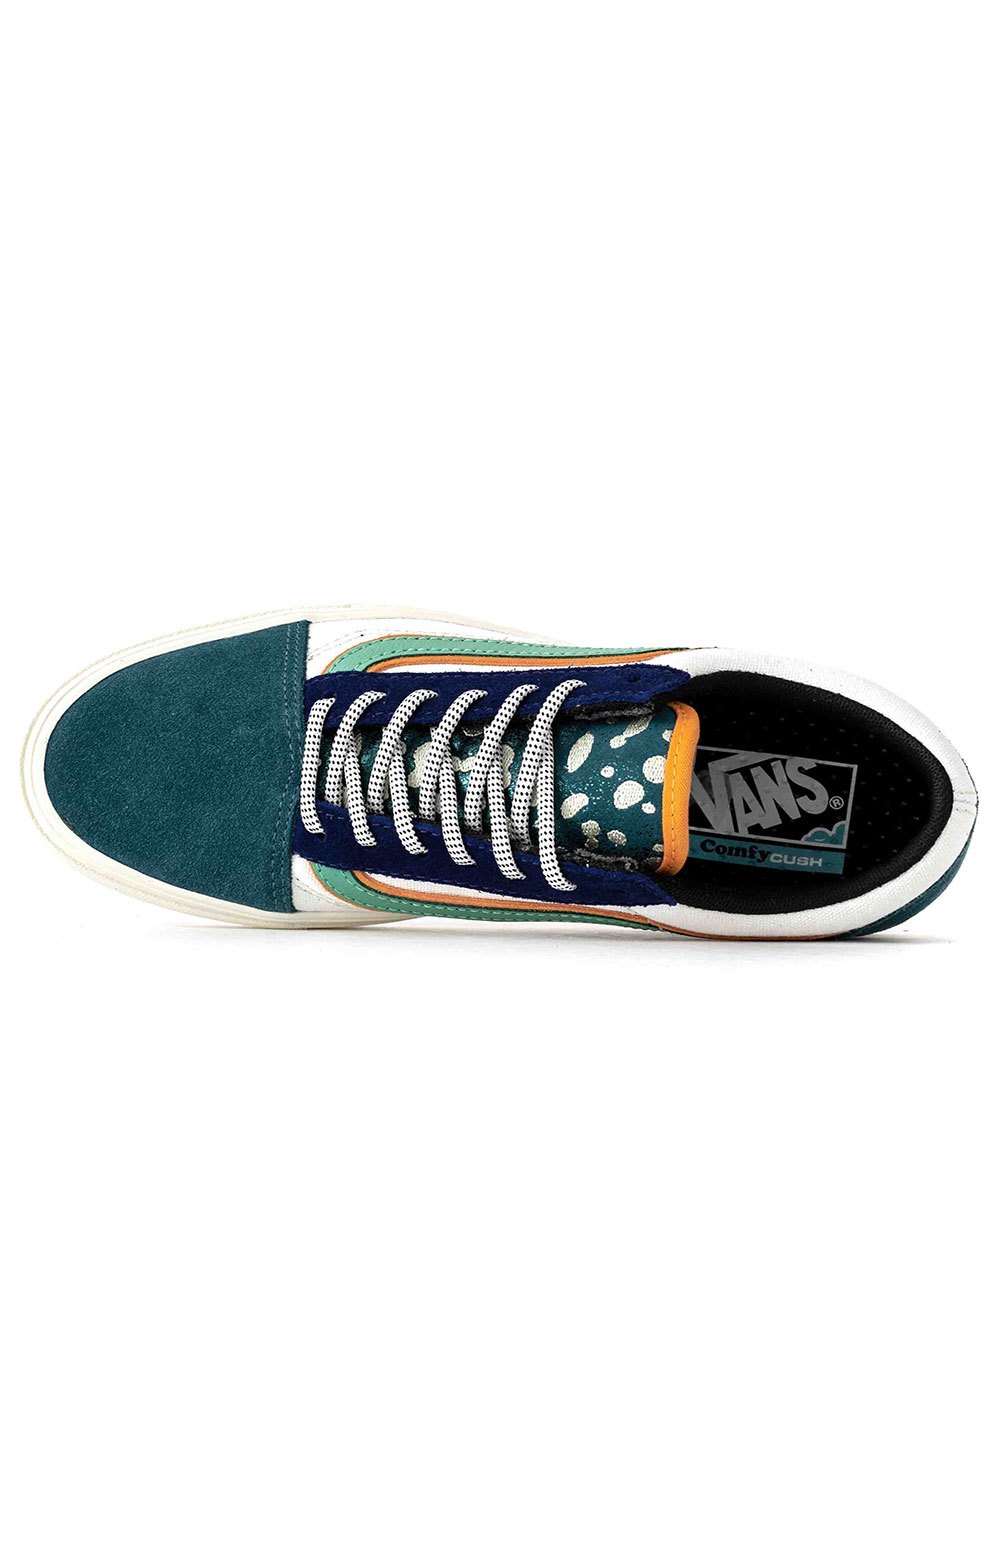 (WMAWWF) Bugs Old Skool ComfyCush Shoe - Multi 2